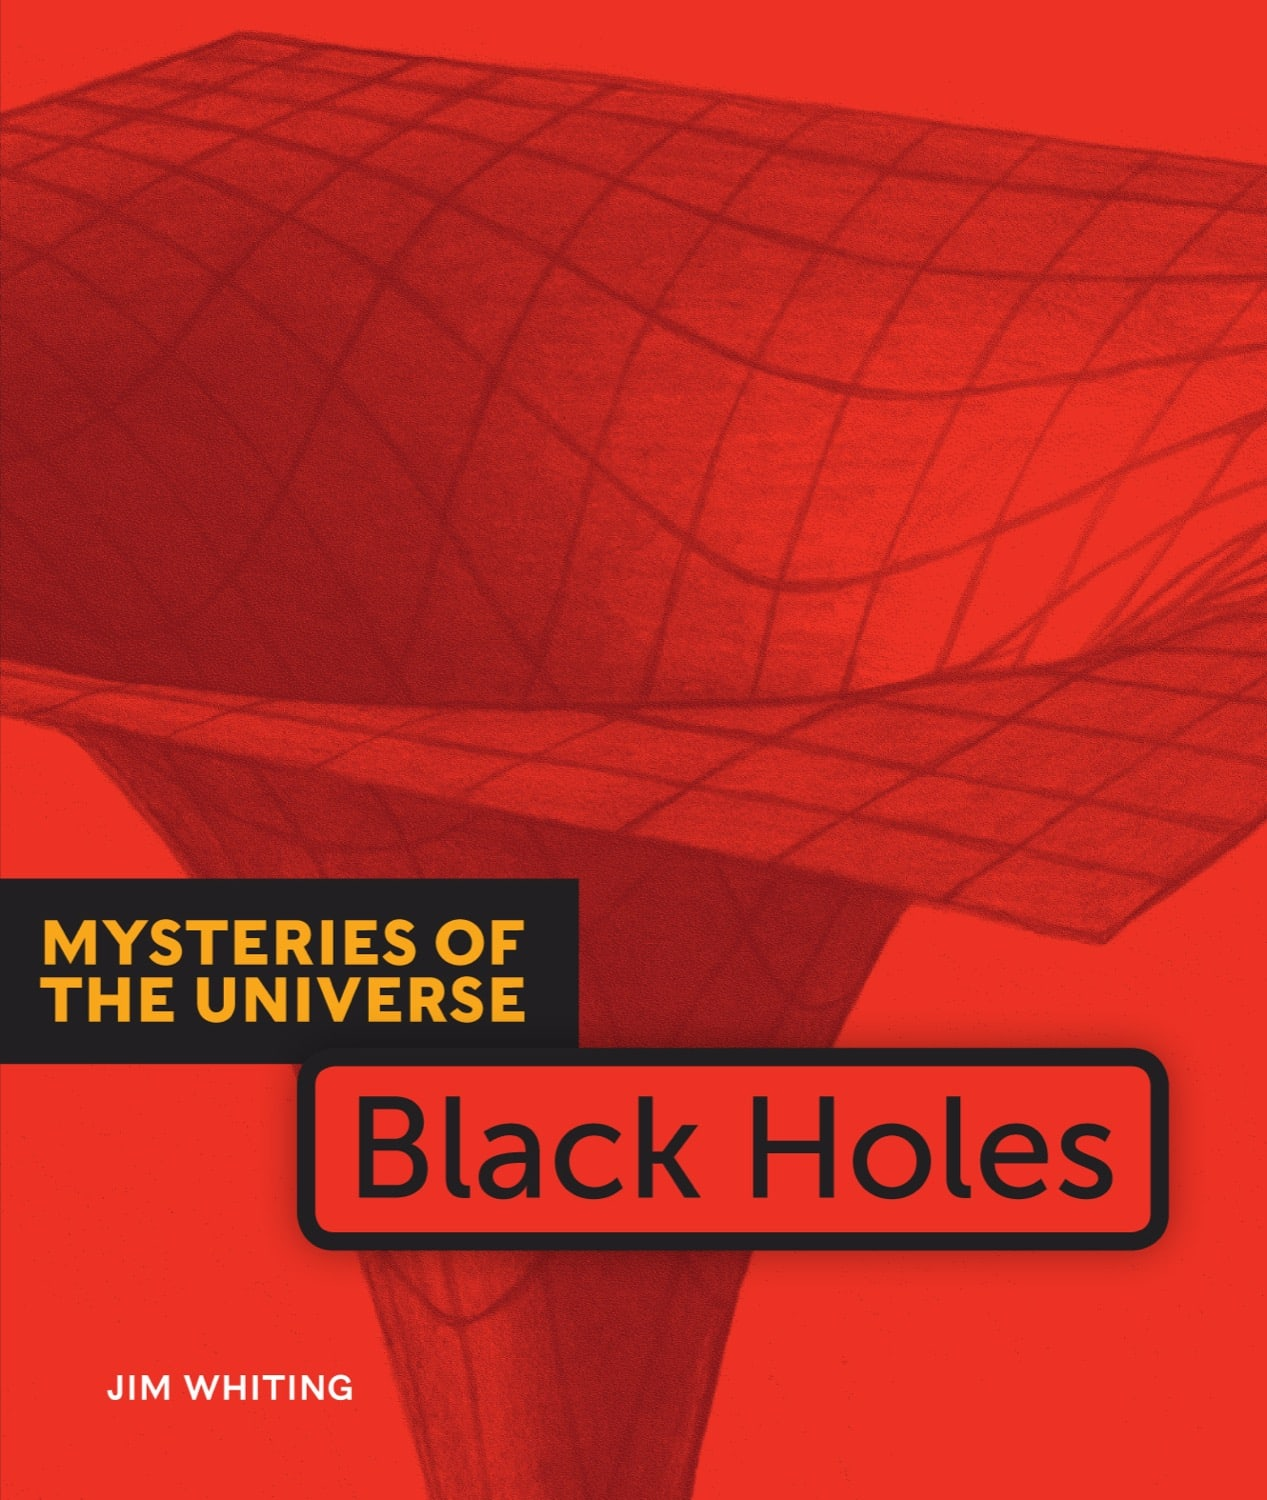 Mysteries of the Universe: Black Holes